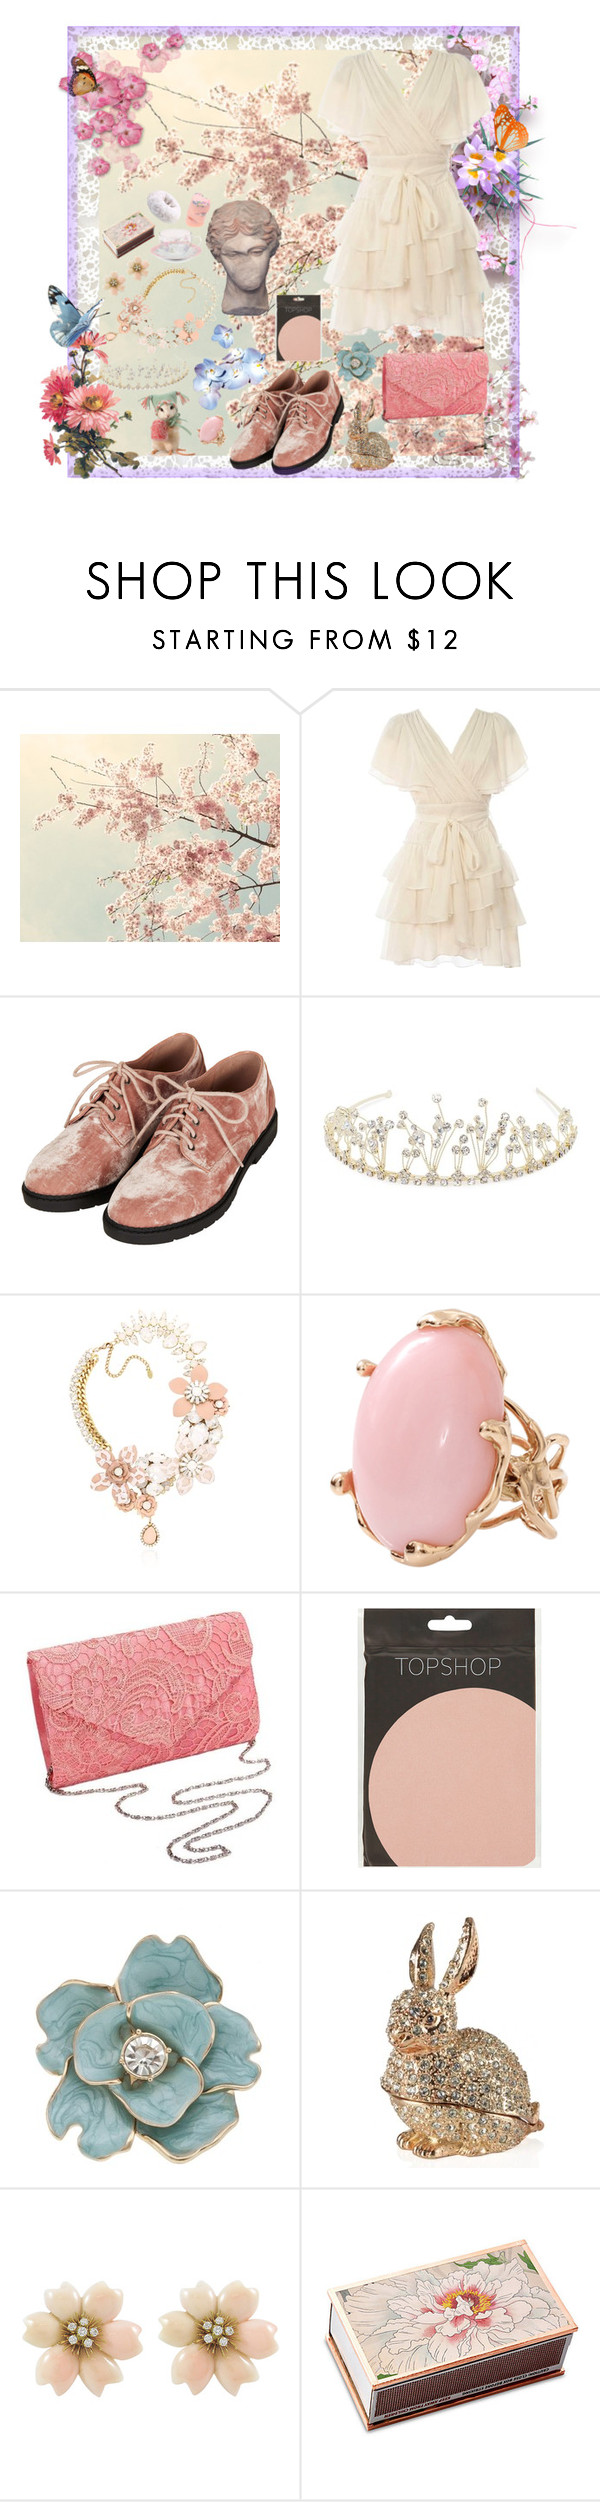 """Pixie Dust"" by scarlet-locks ❤ liked on Polyvore featuring WALL, Topshop, Jon Richard, Halo & Co., Lucifer Vir Honestus and Shandell's"